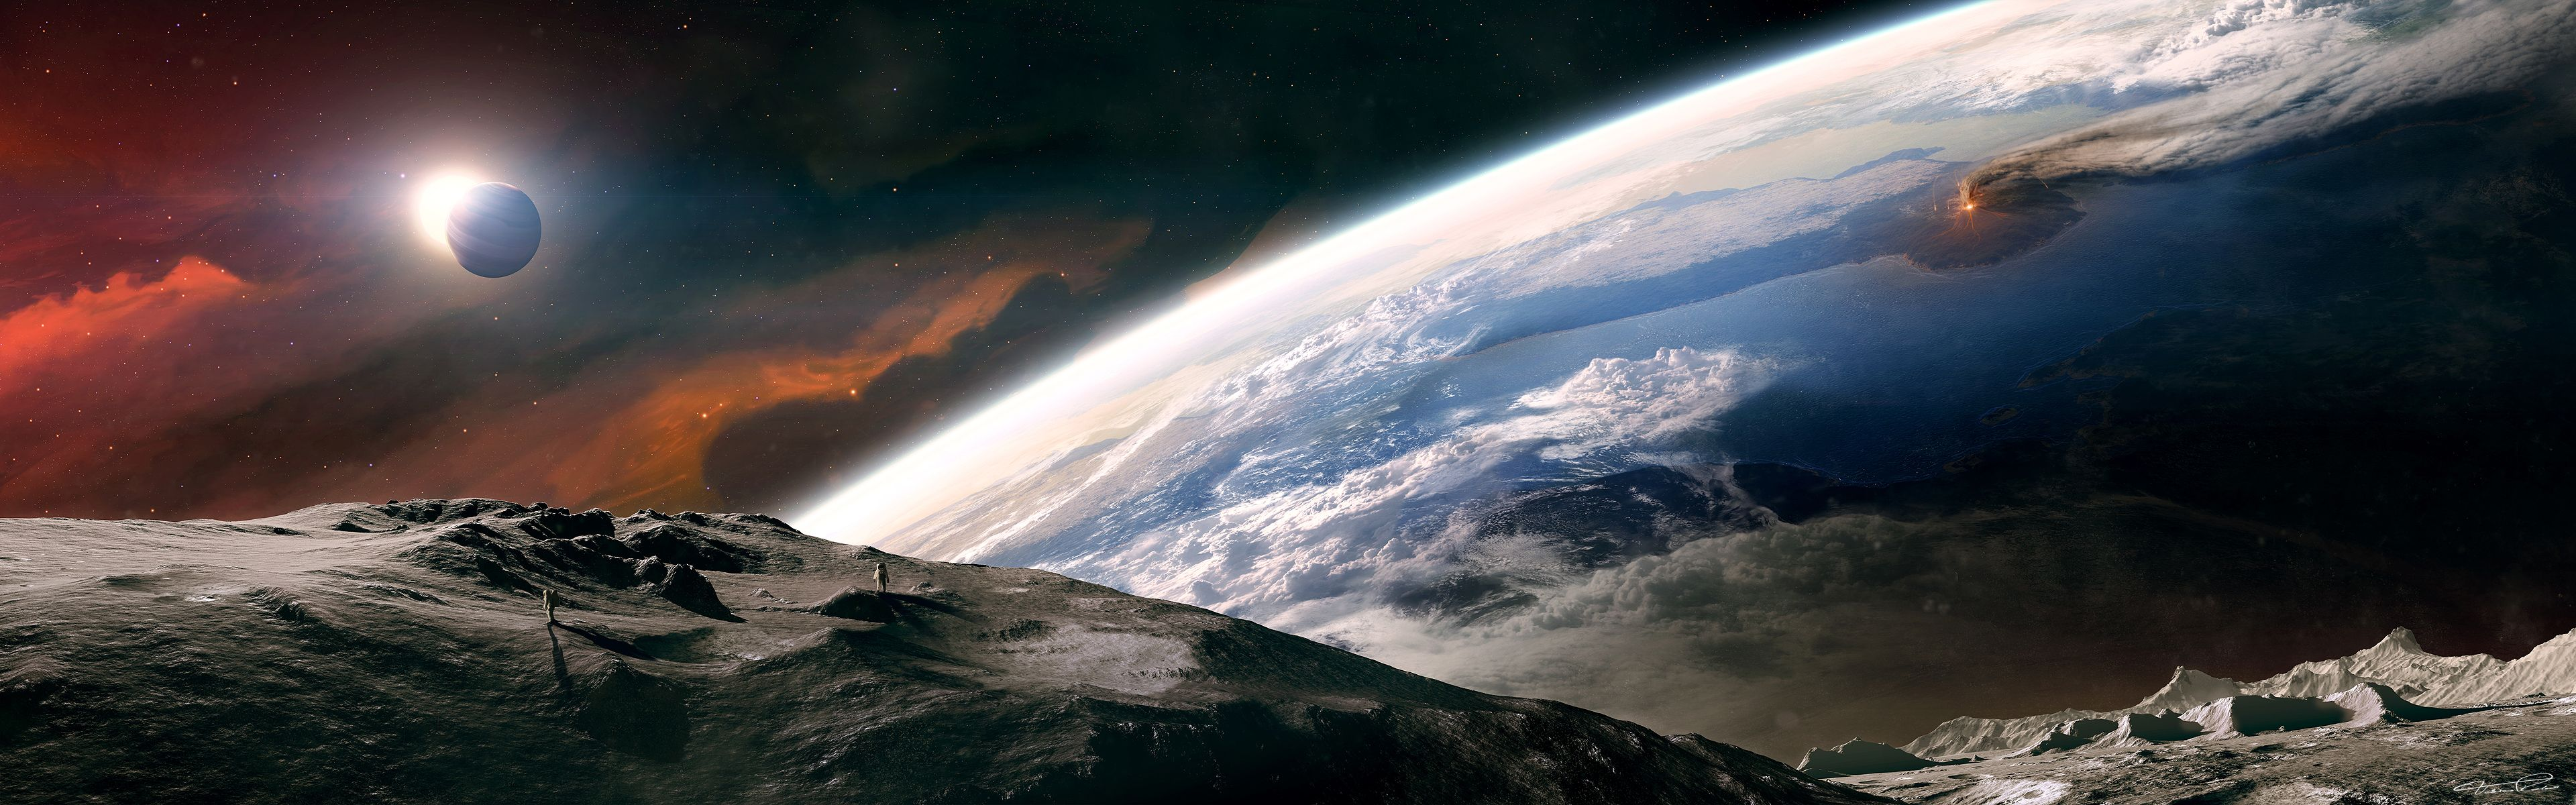 3d Space Scene Dual Screen Wallpaper #157366 - Resolution ...